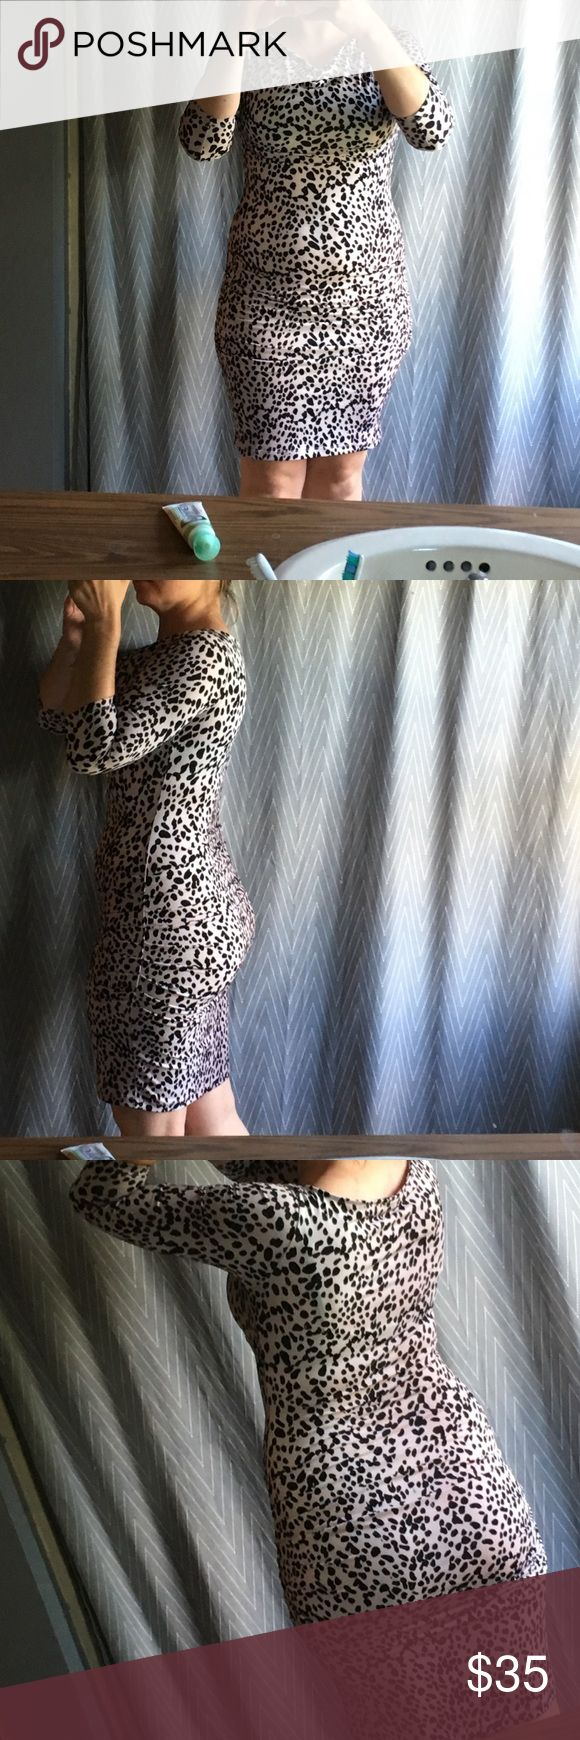 Cheetah print dress 3/4 length long sleeve dress. So comfortable, hugs the body in all the right places. Size is XS and I usually wear a s/m. Perfect for a night out with the girls😉 J. Lopez Dresses Mini